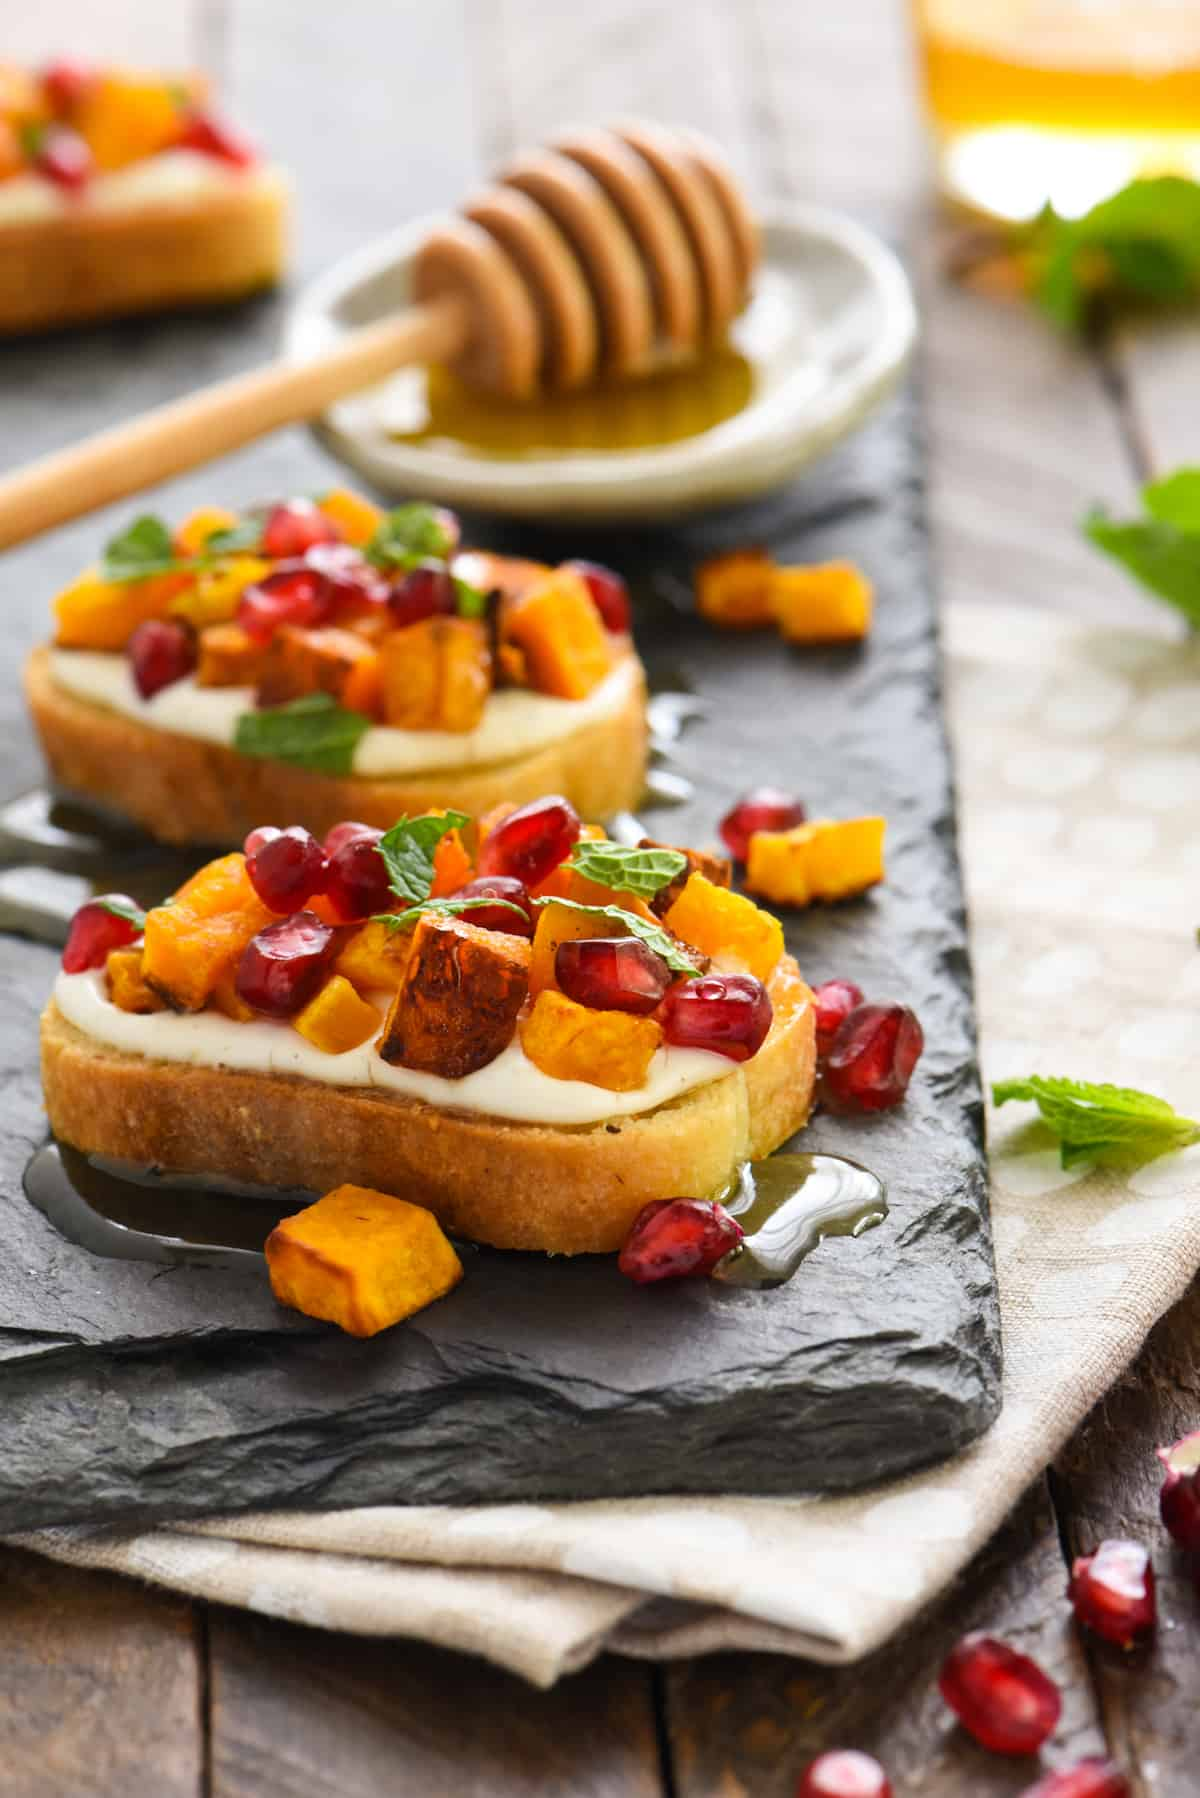 Crostini topped with white sauce, butternut squash and pomegranate seeds, on slate platter.